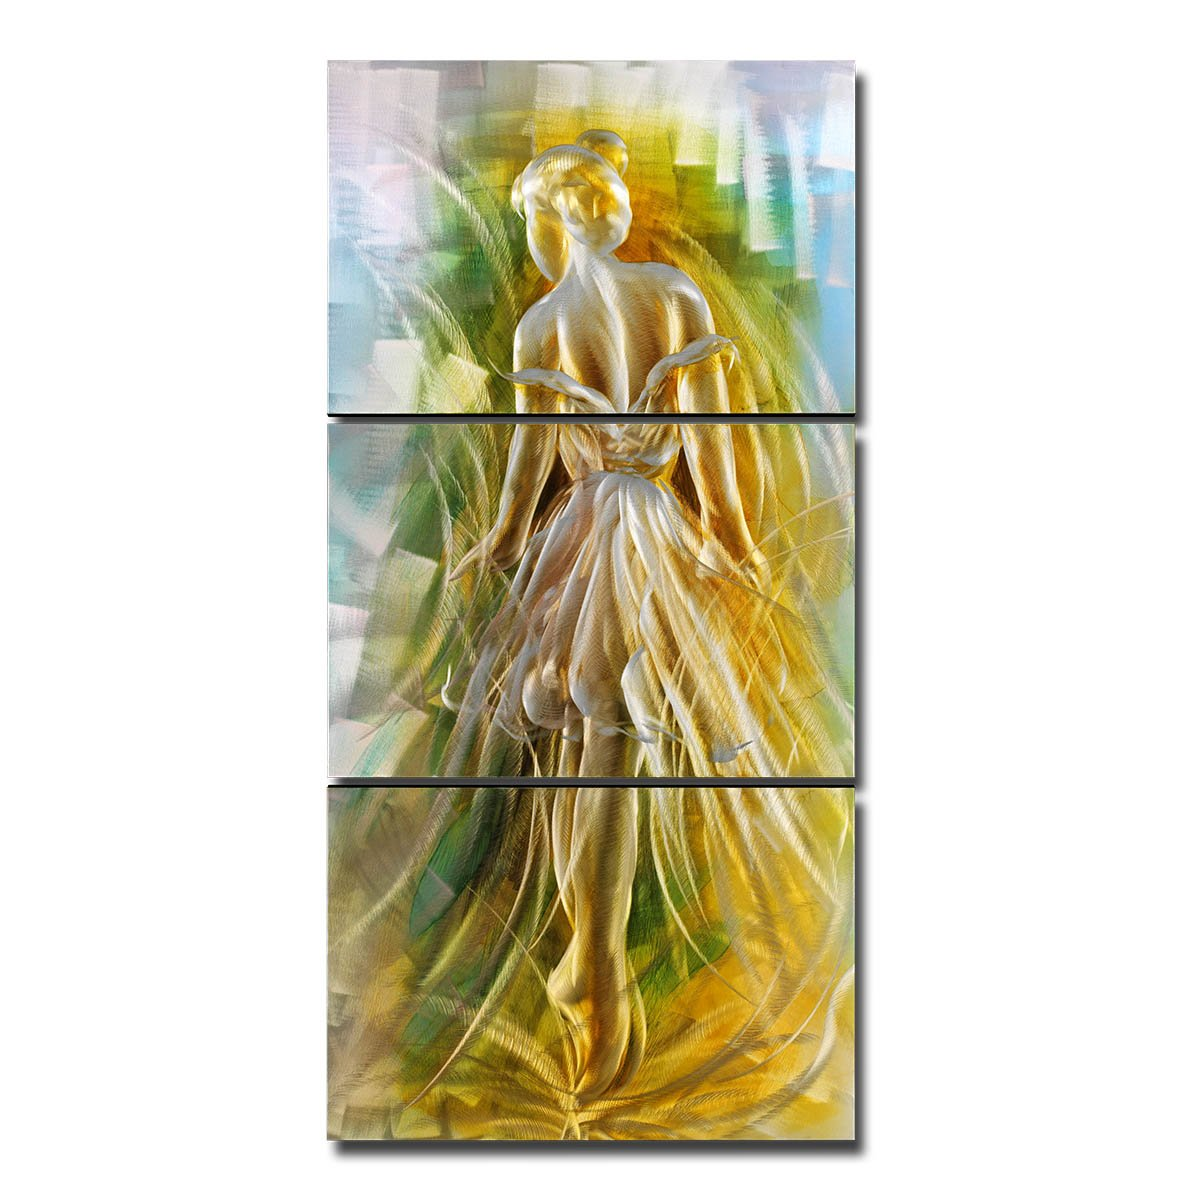 Tooarts Original Ballet Girl Modern Aluminum Wall Art 3-Panels Hanging Artwork for Home Decoration 24''x47'' by Tooarts